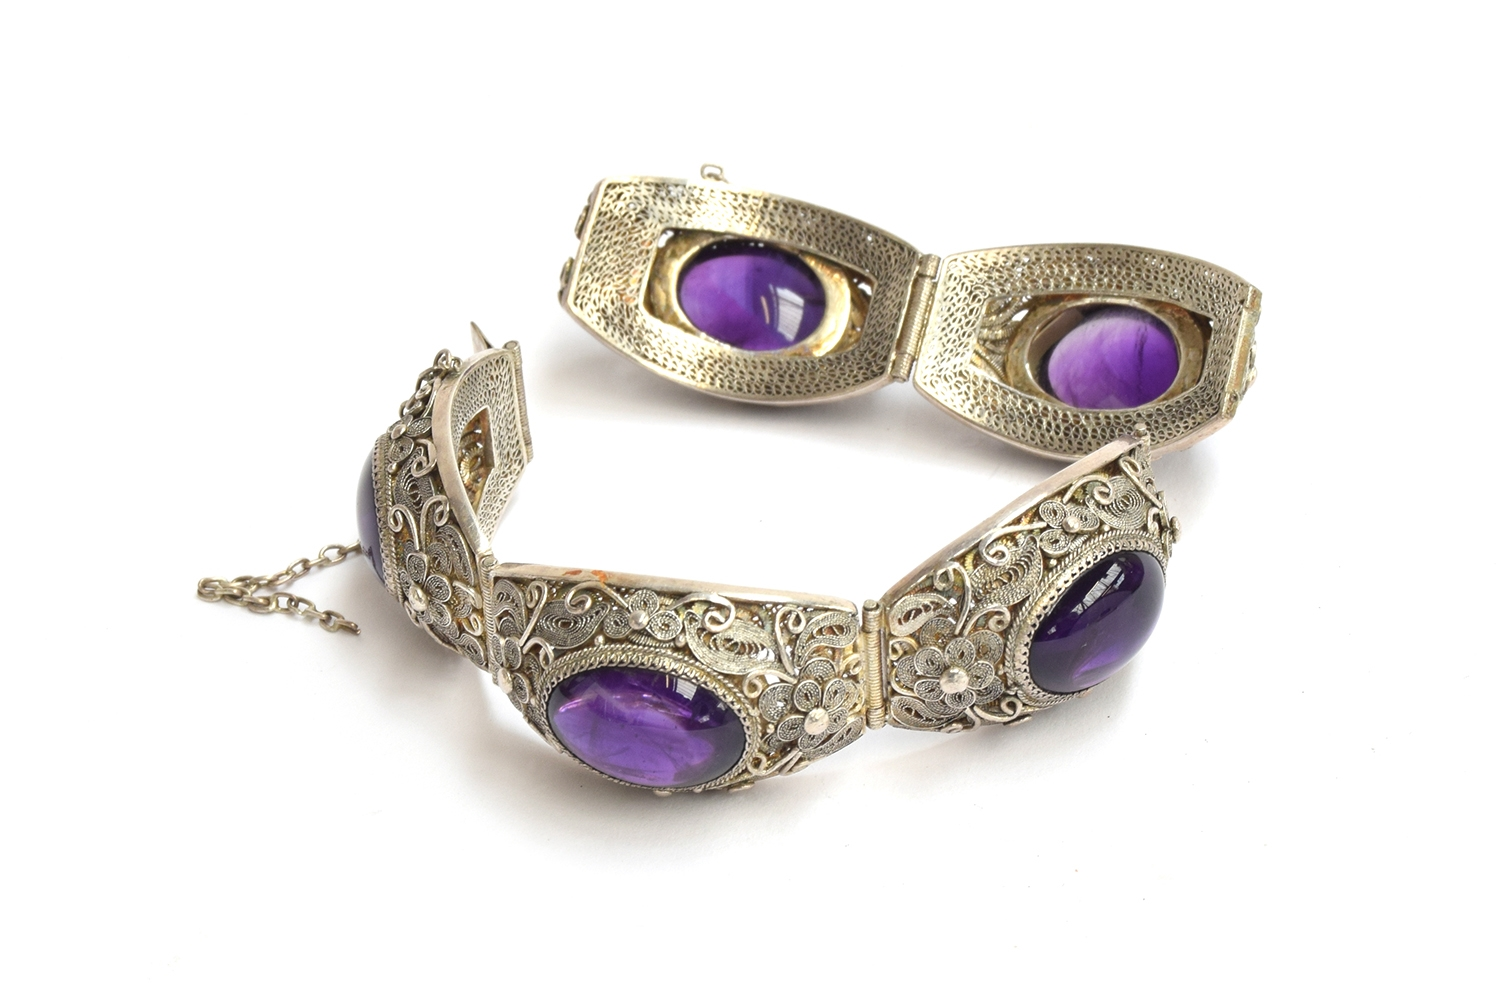 A Chinese silver filigree bracelet set with 5 amythyst cabochons (in two pieces)